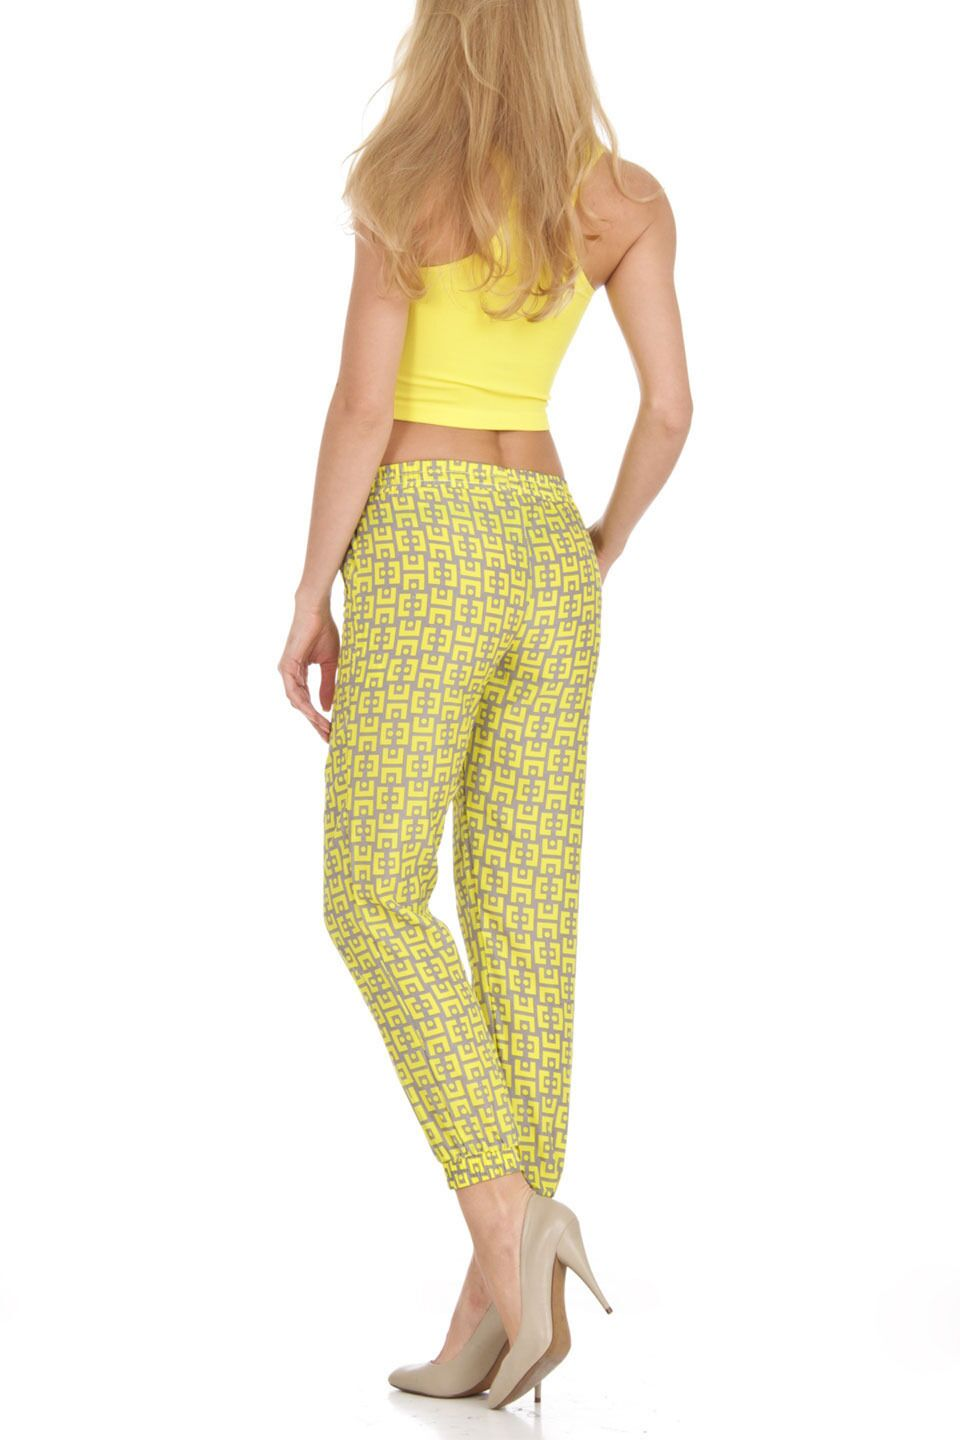 Yellow and Tan Print Harem Jogger Pants - Home Goods Galore